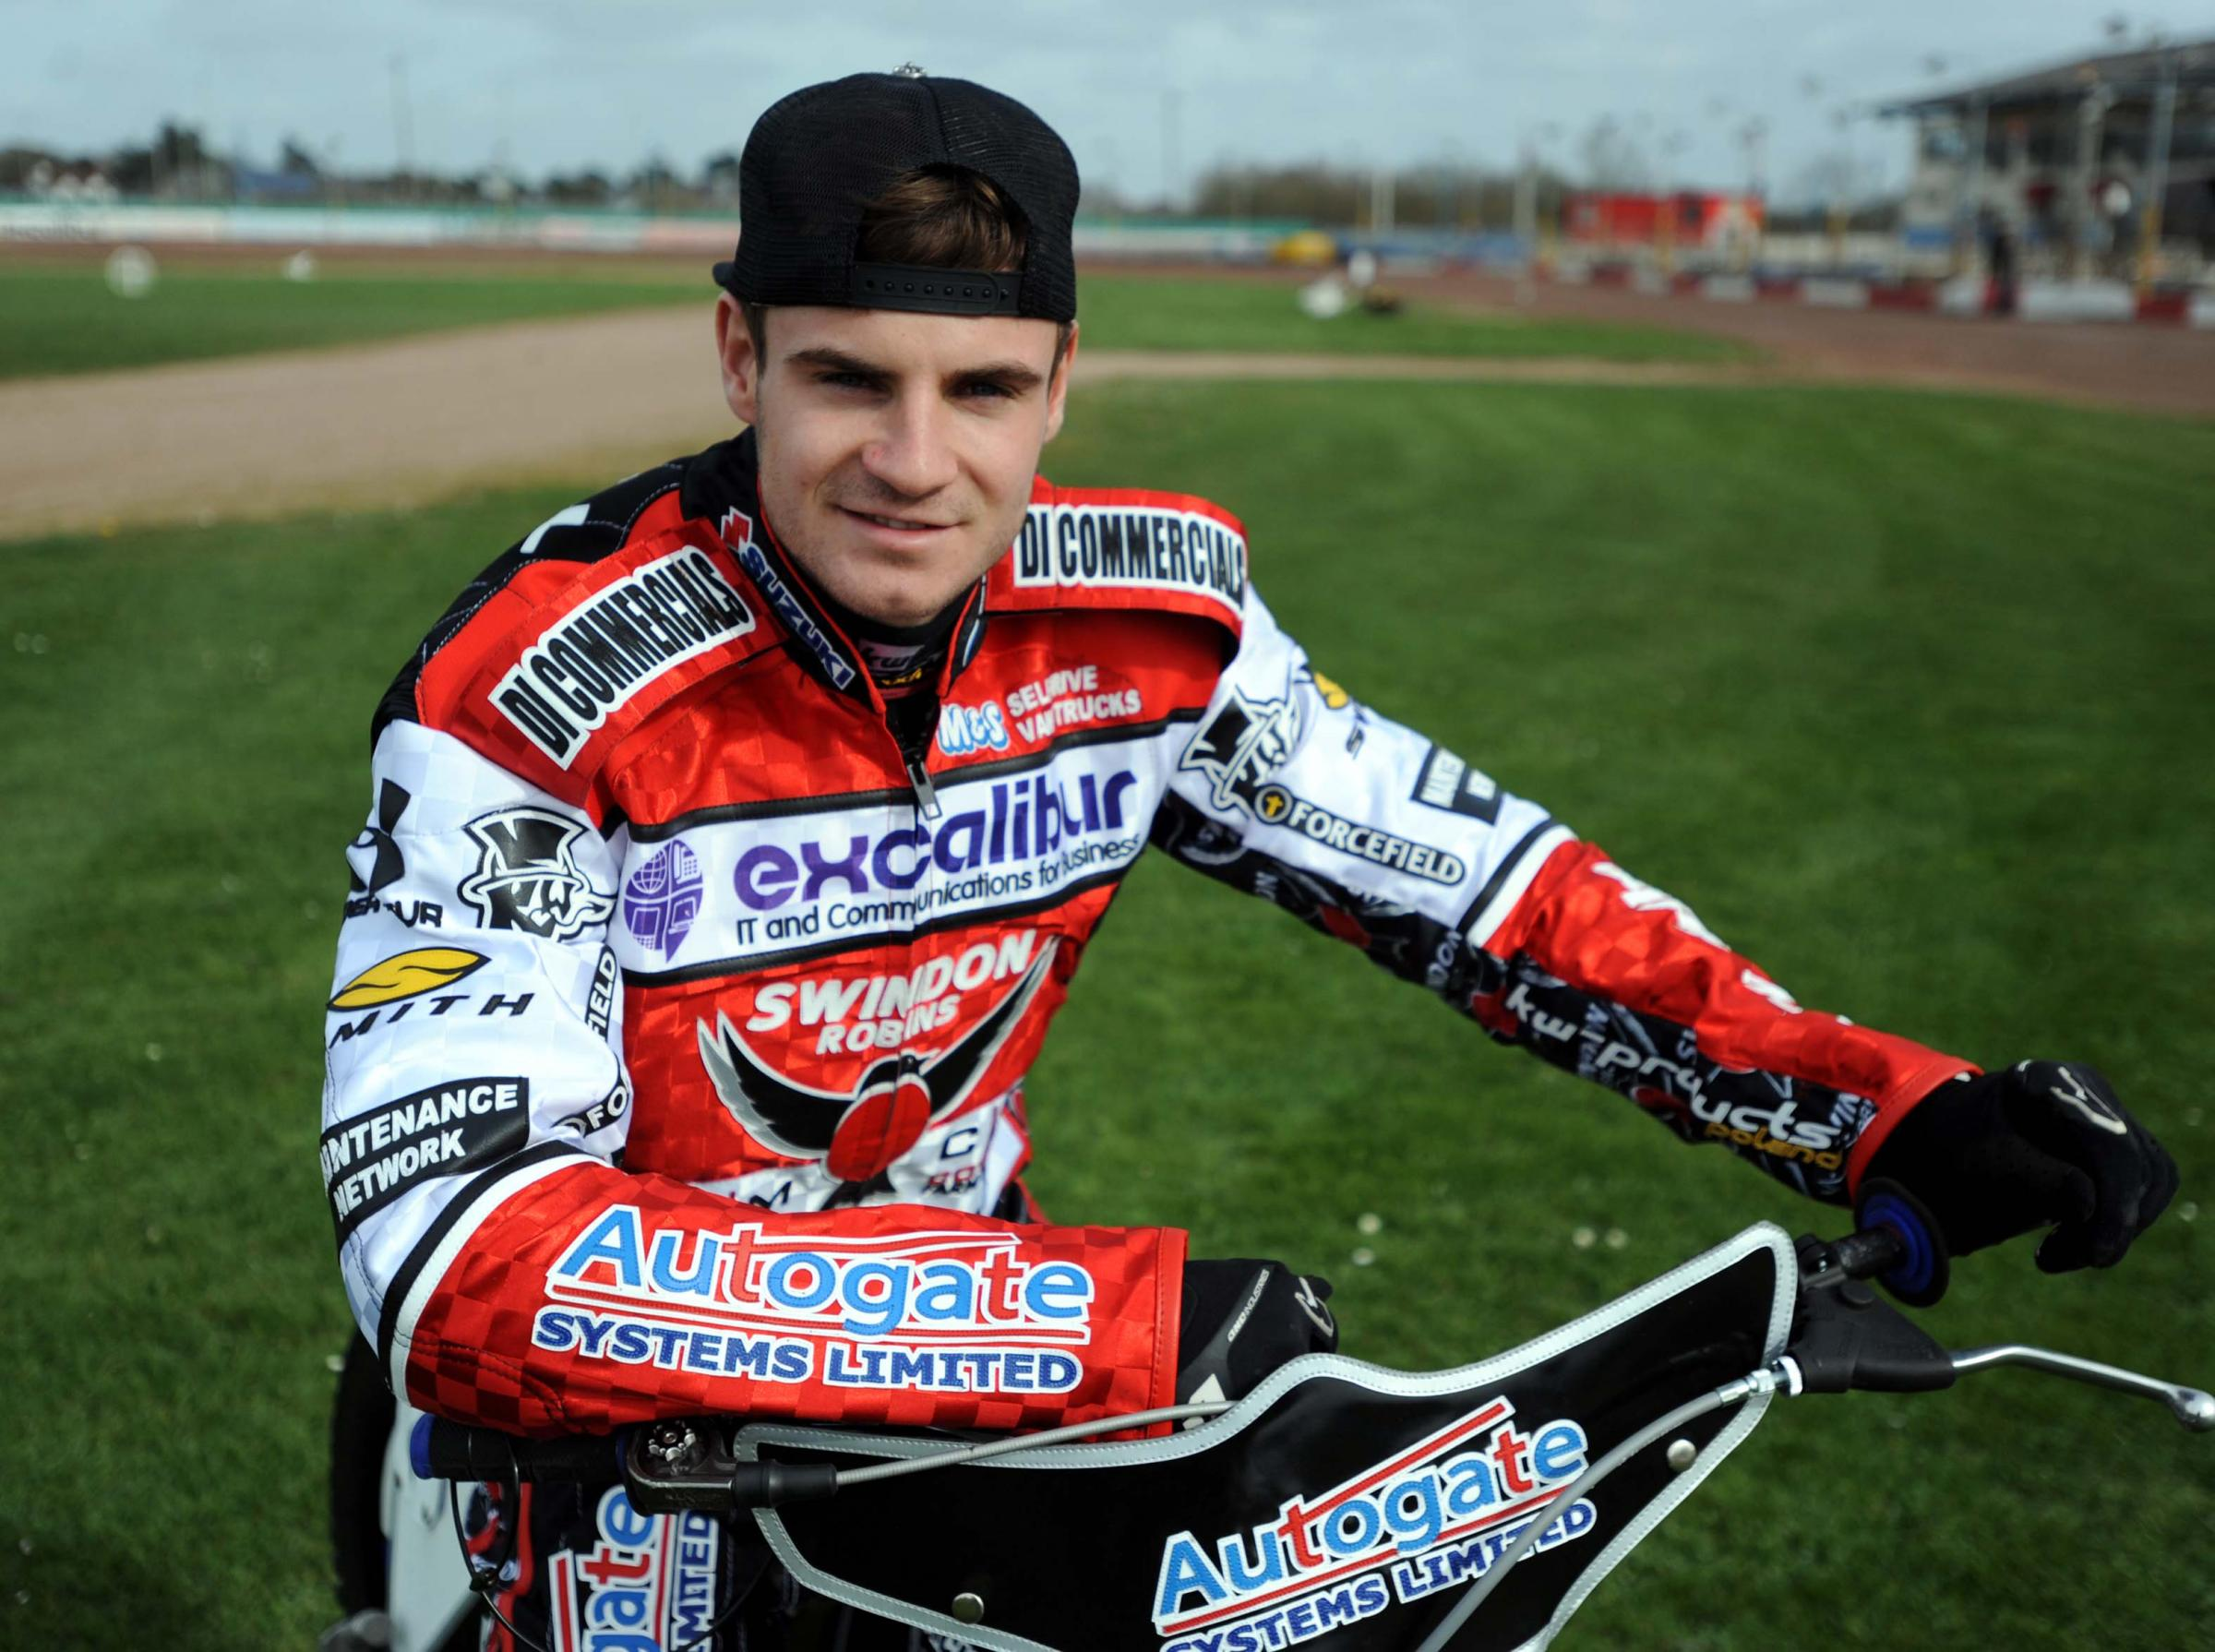 Steve Worrall is unavailable for Swindon Robins on Good Friday